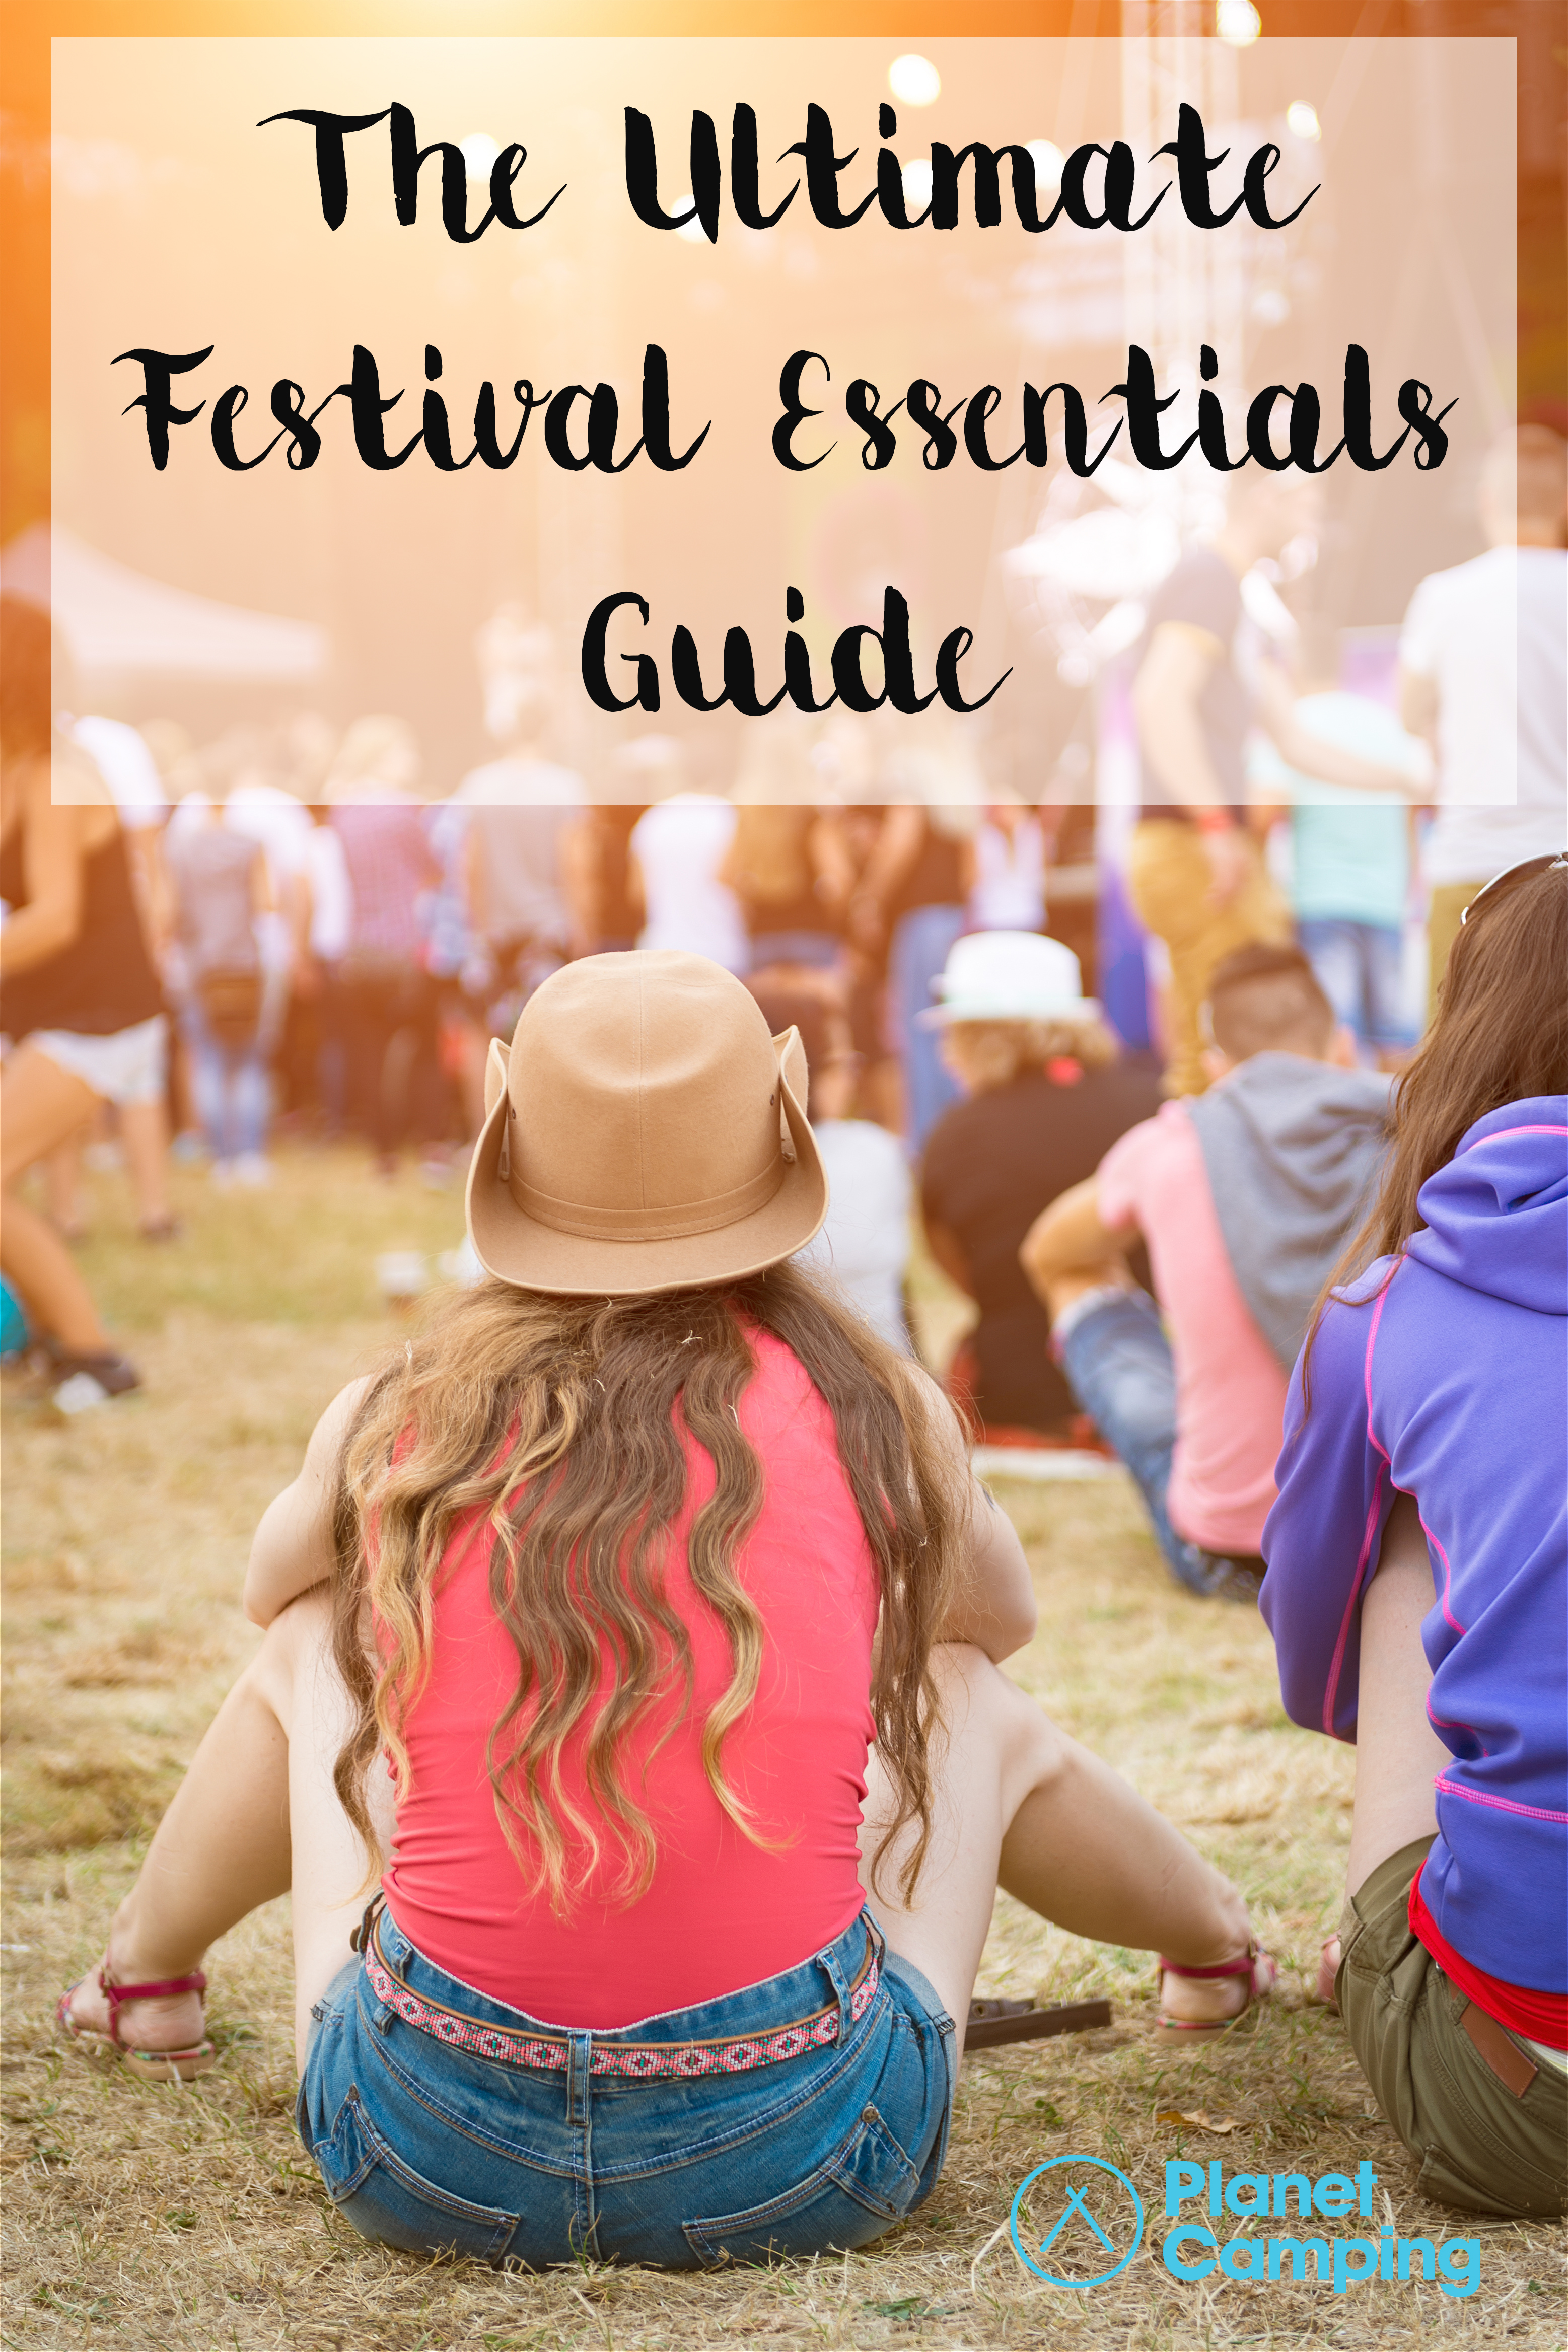 The Ultimate Festival Camping Checklist